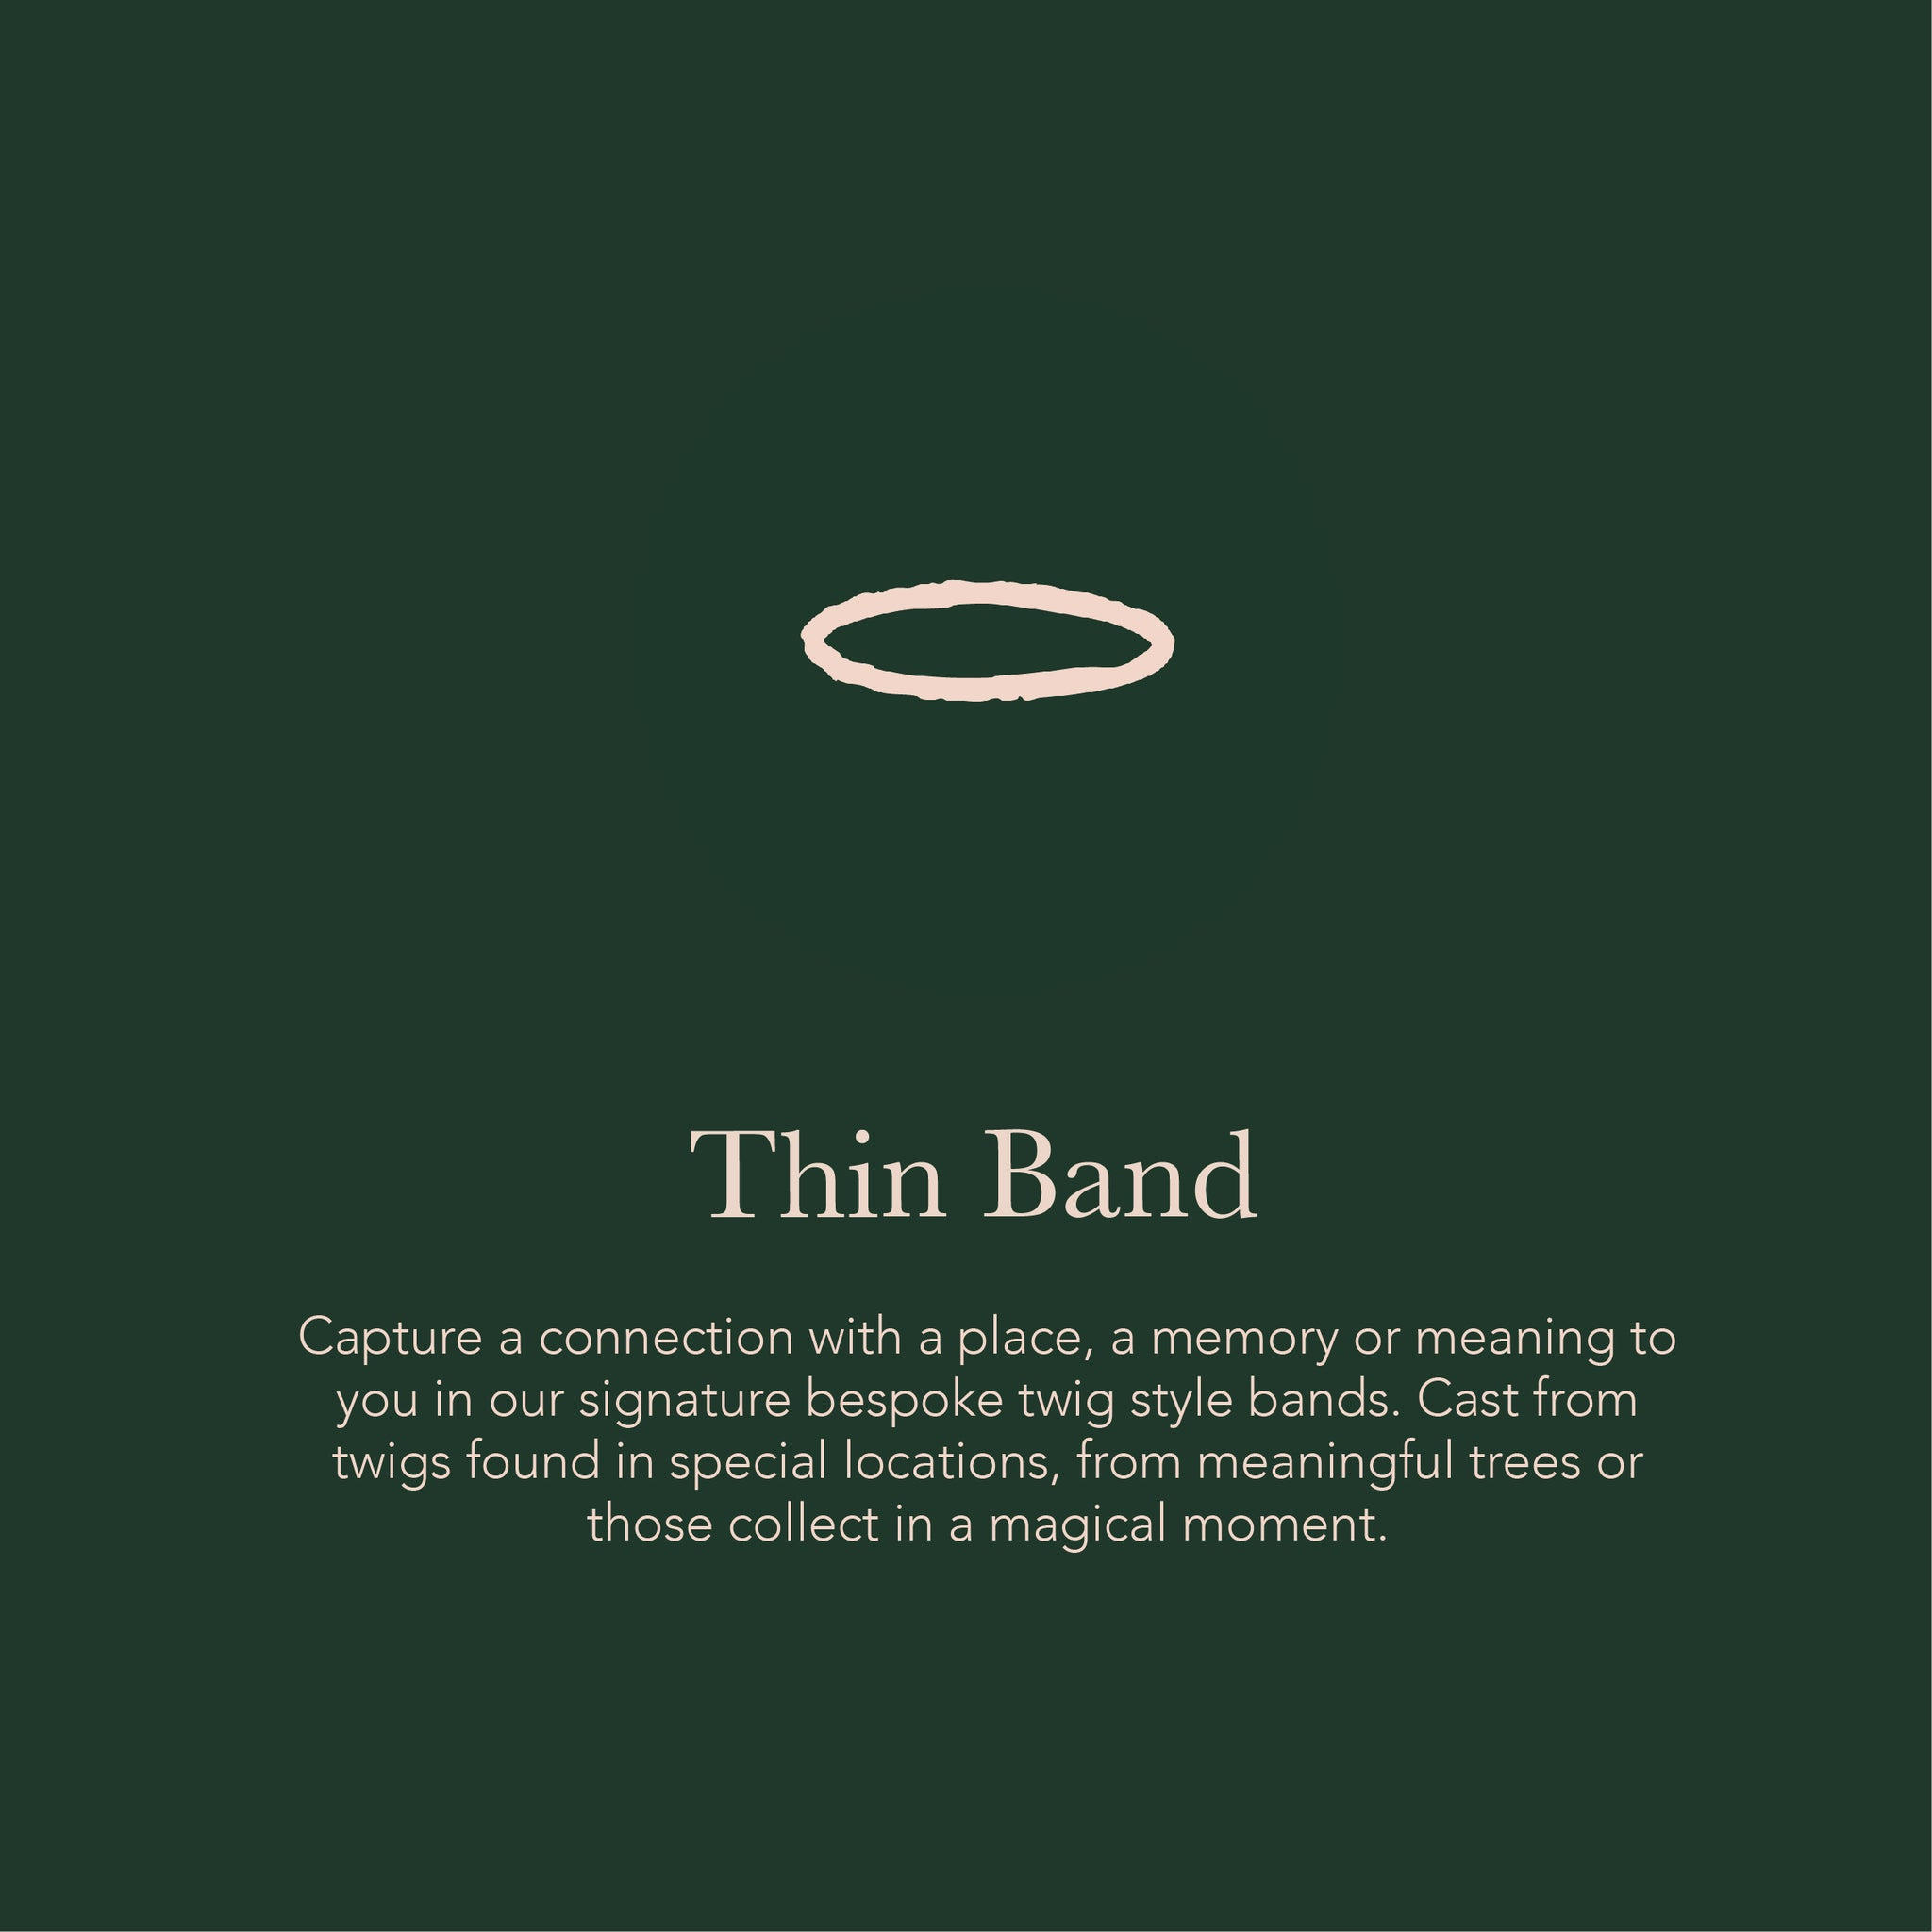 Thin Band - Medium - Create